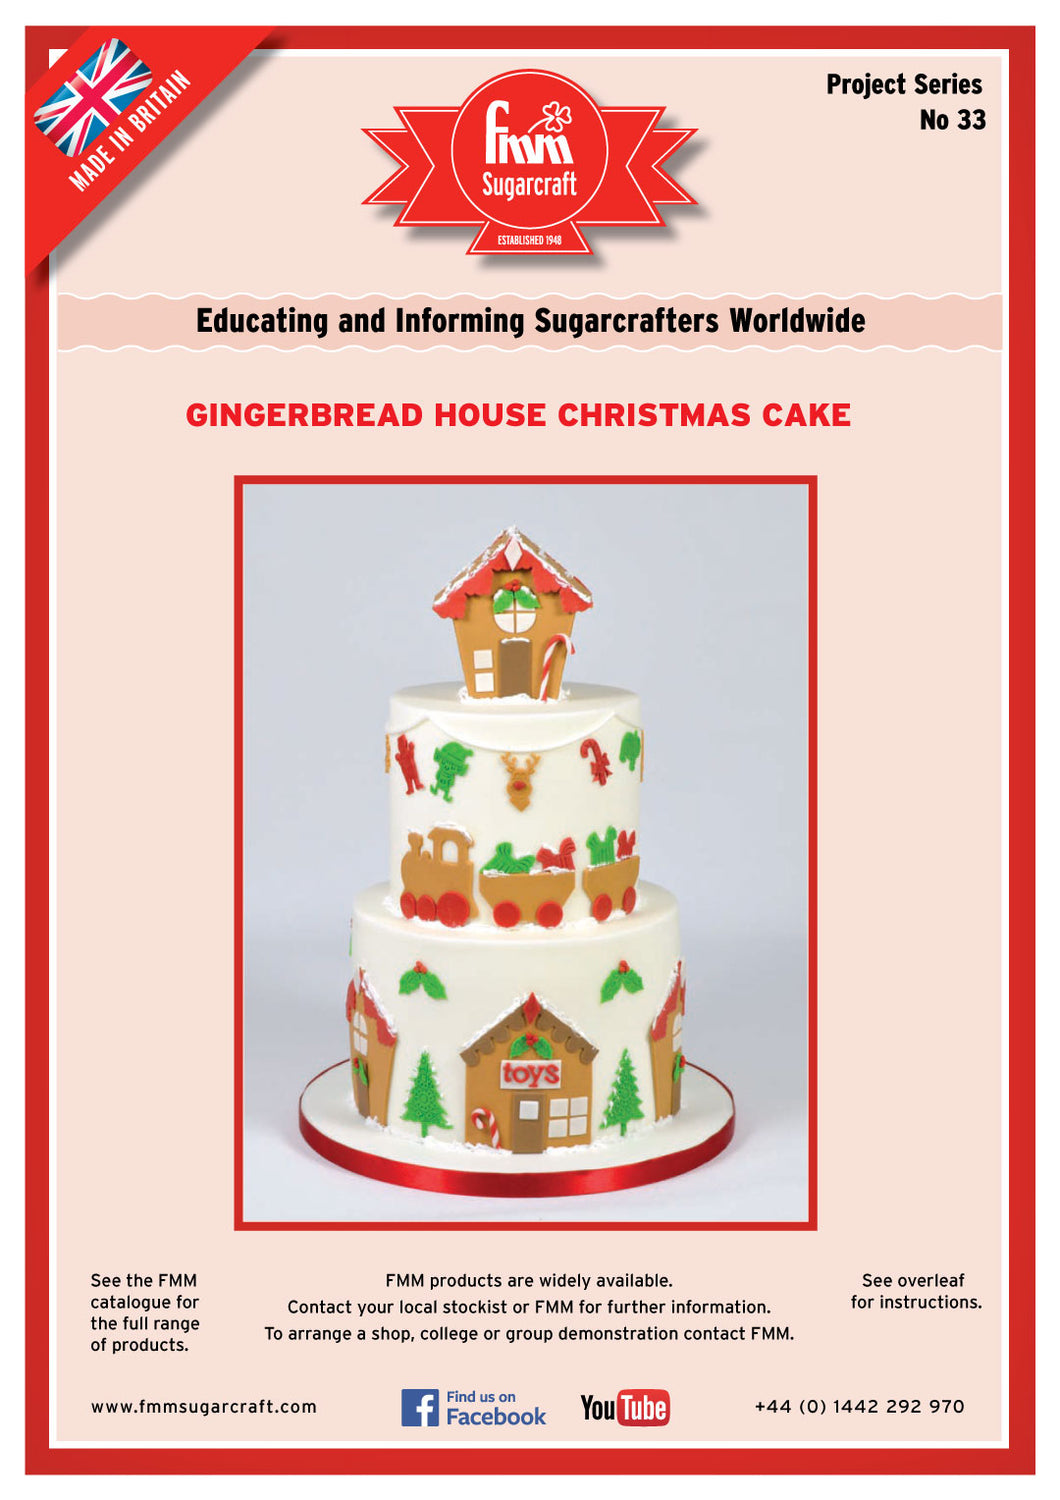 FMM Gingerbread Christmas House Project Sheet